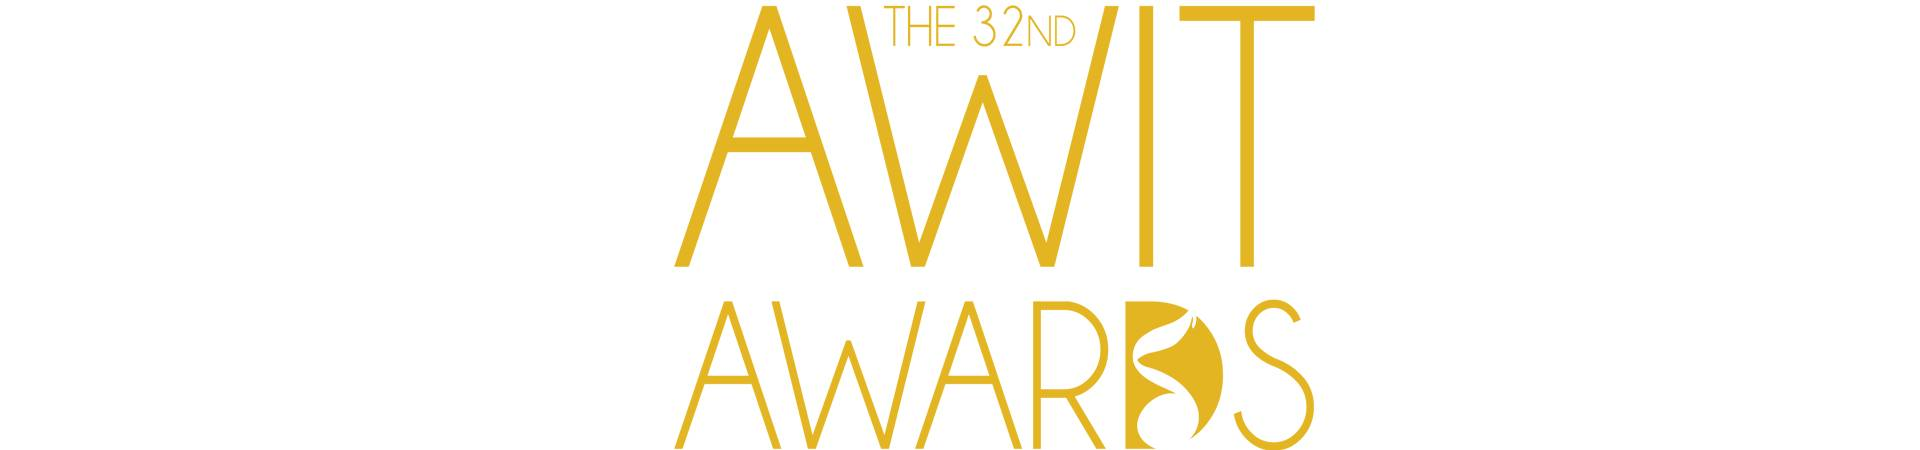 32nd Awit Awards Favorite New Group Artists